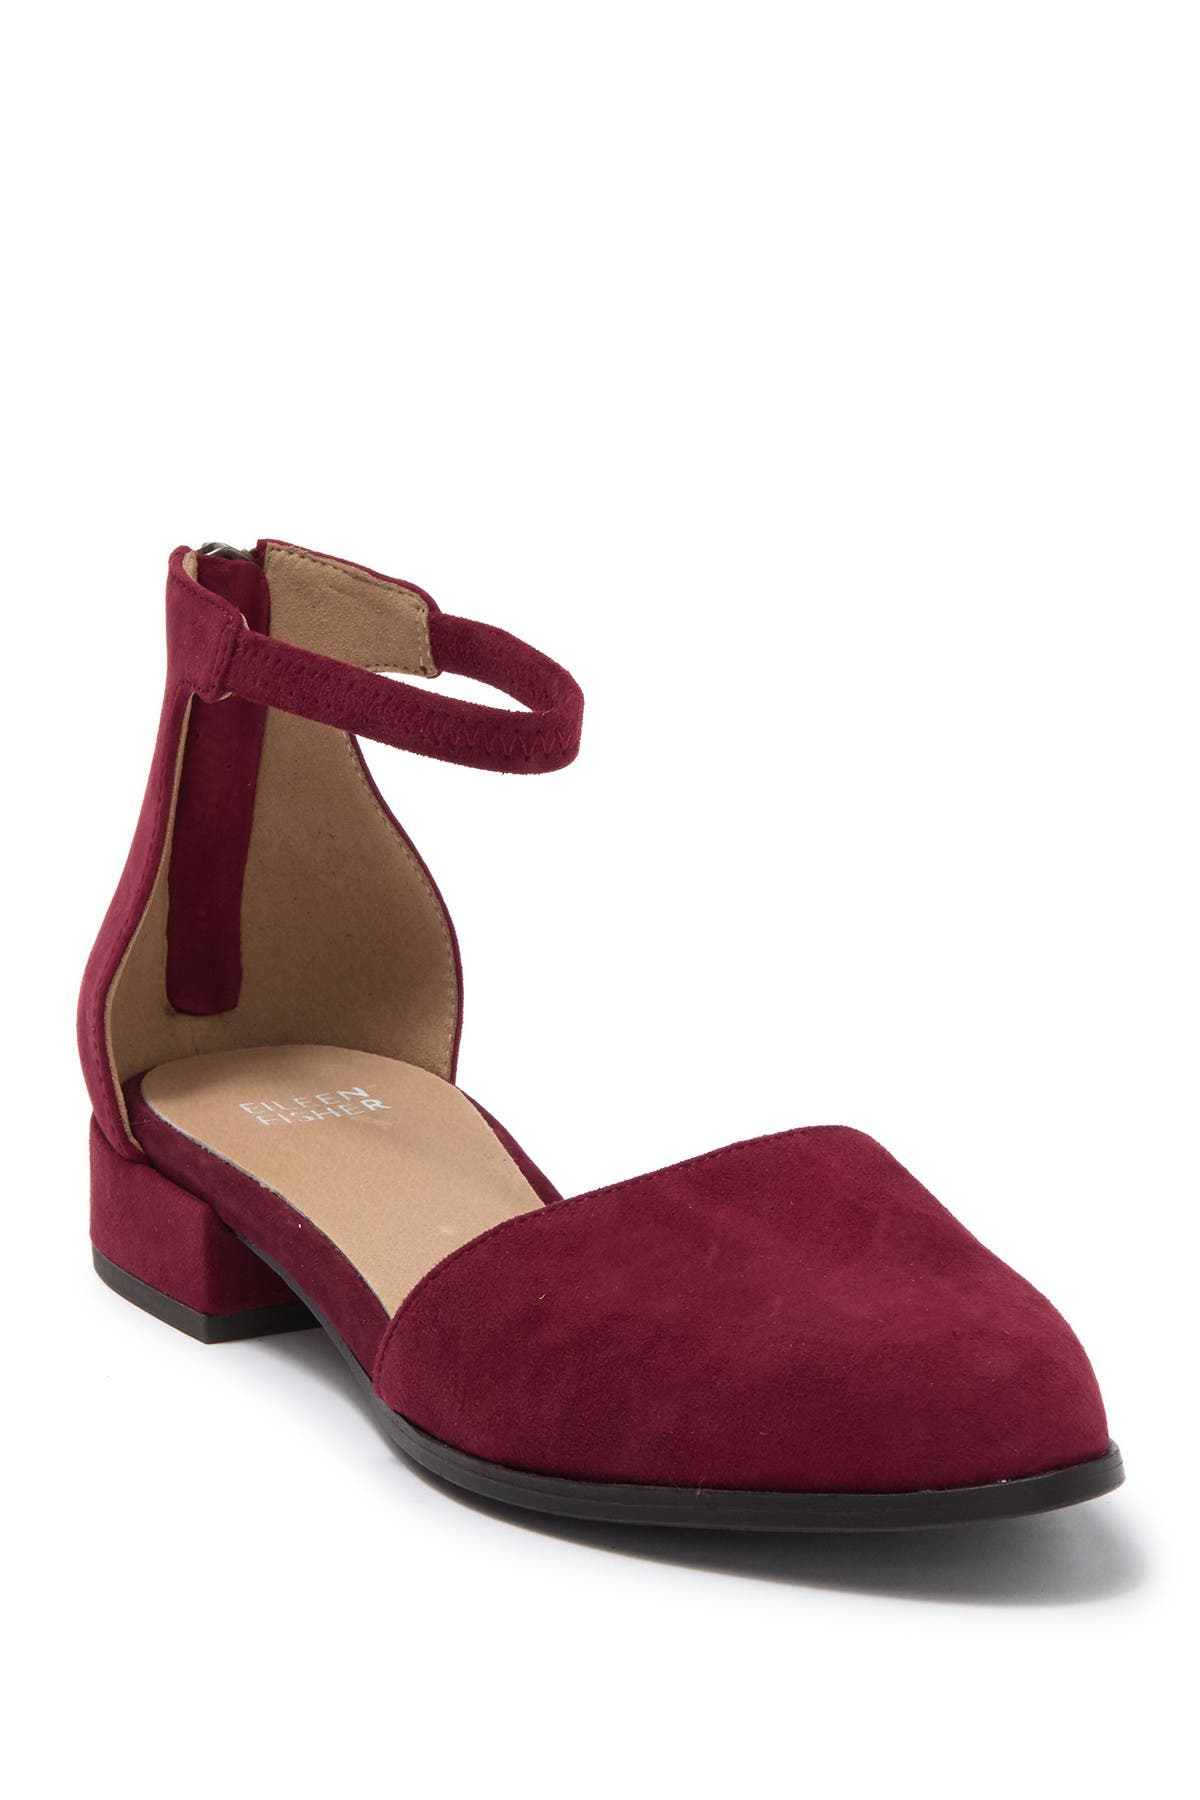 Image of Eileen Fisher Hutton Ankle Strap Flat